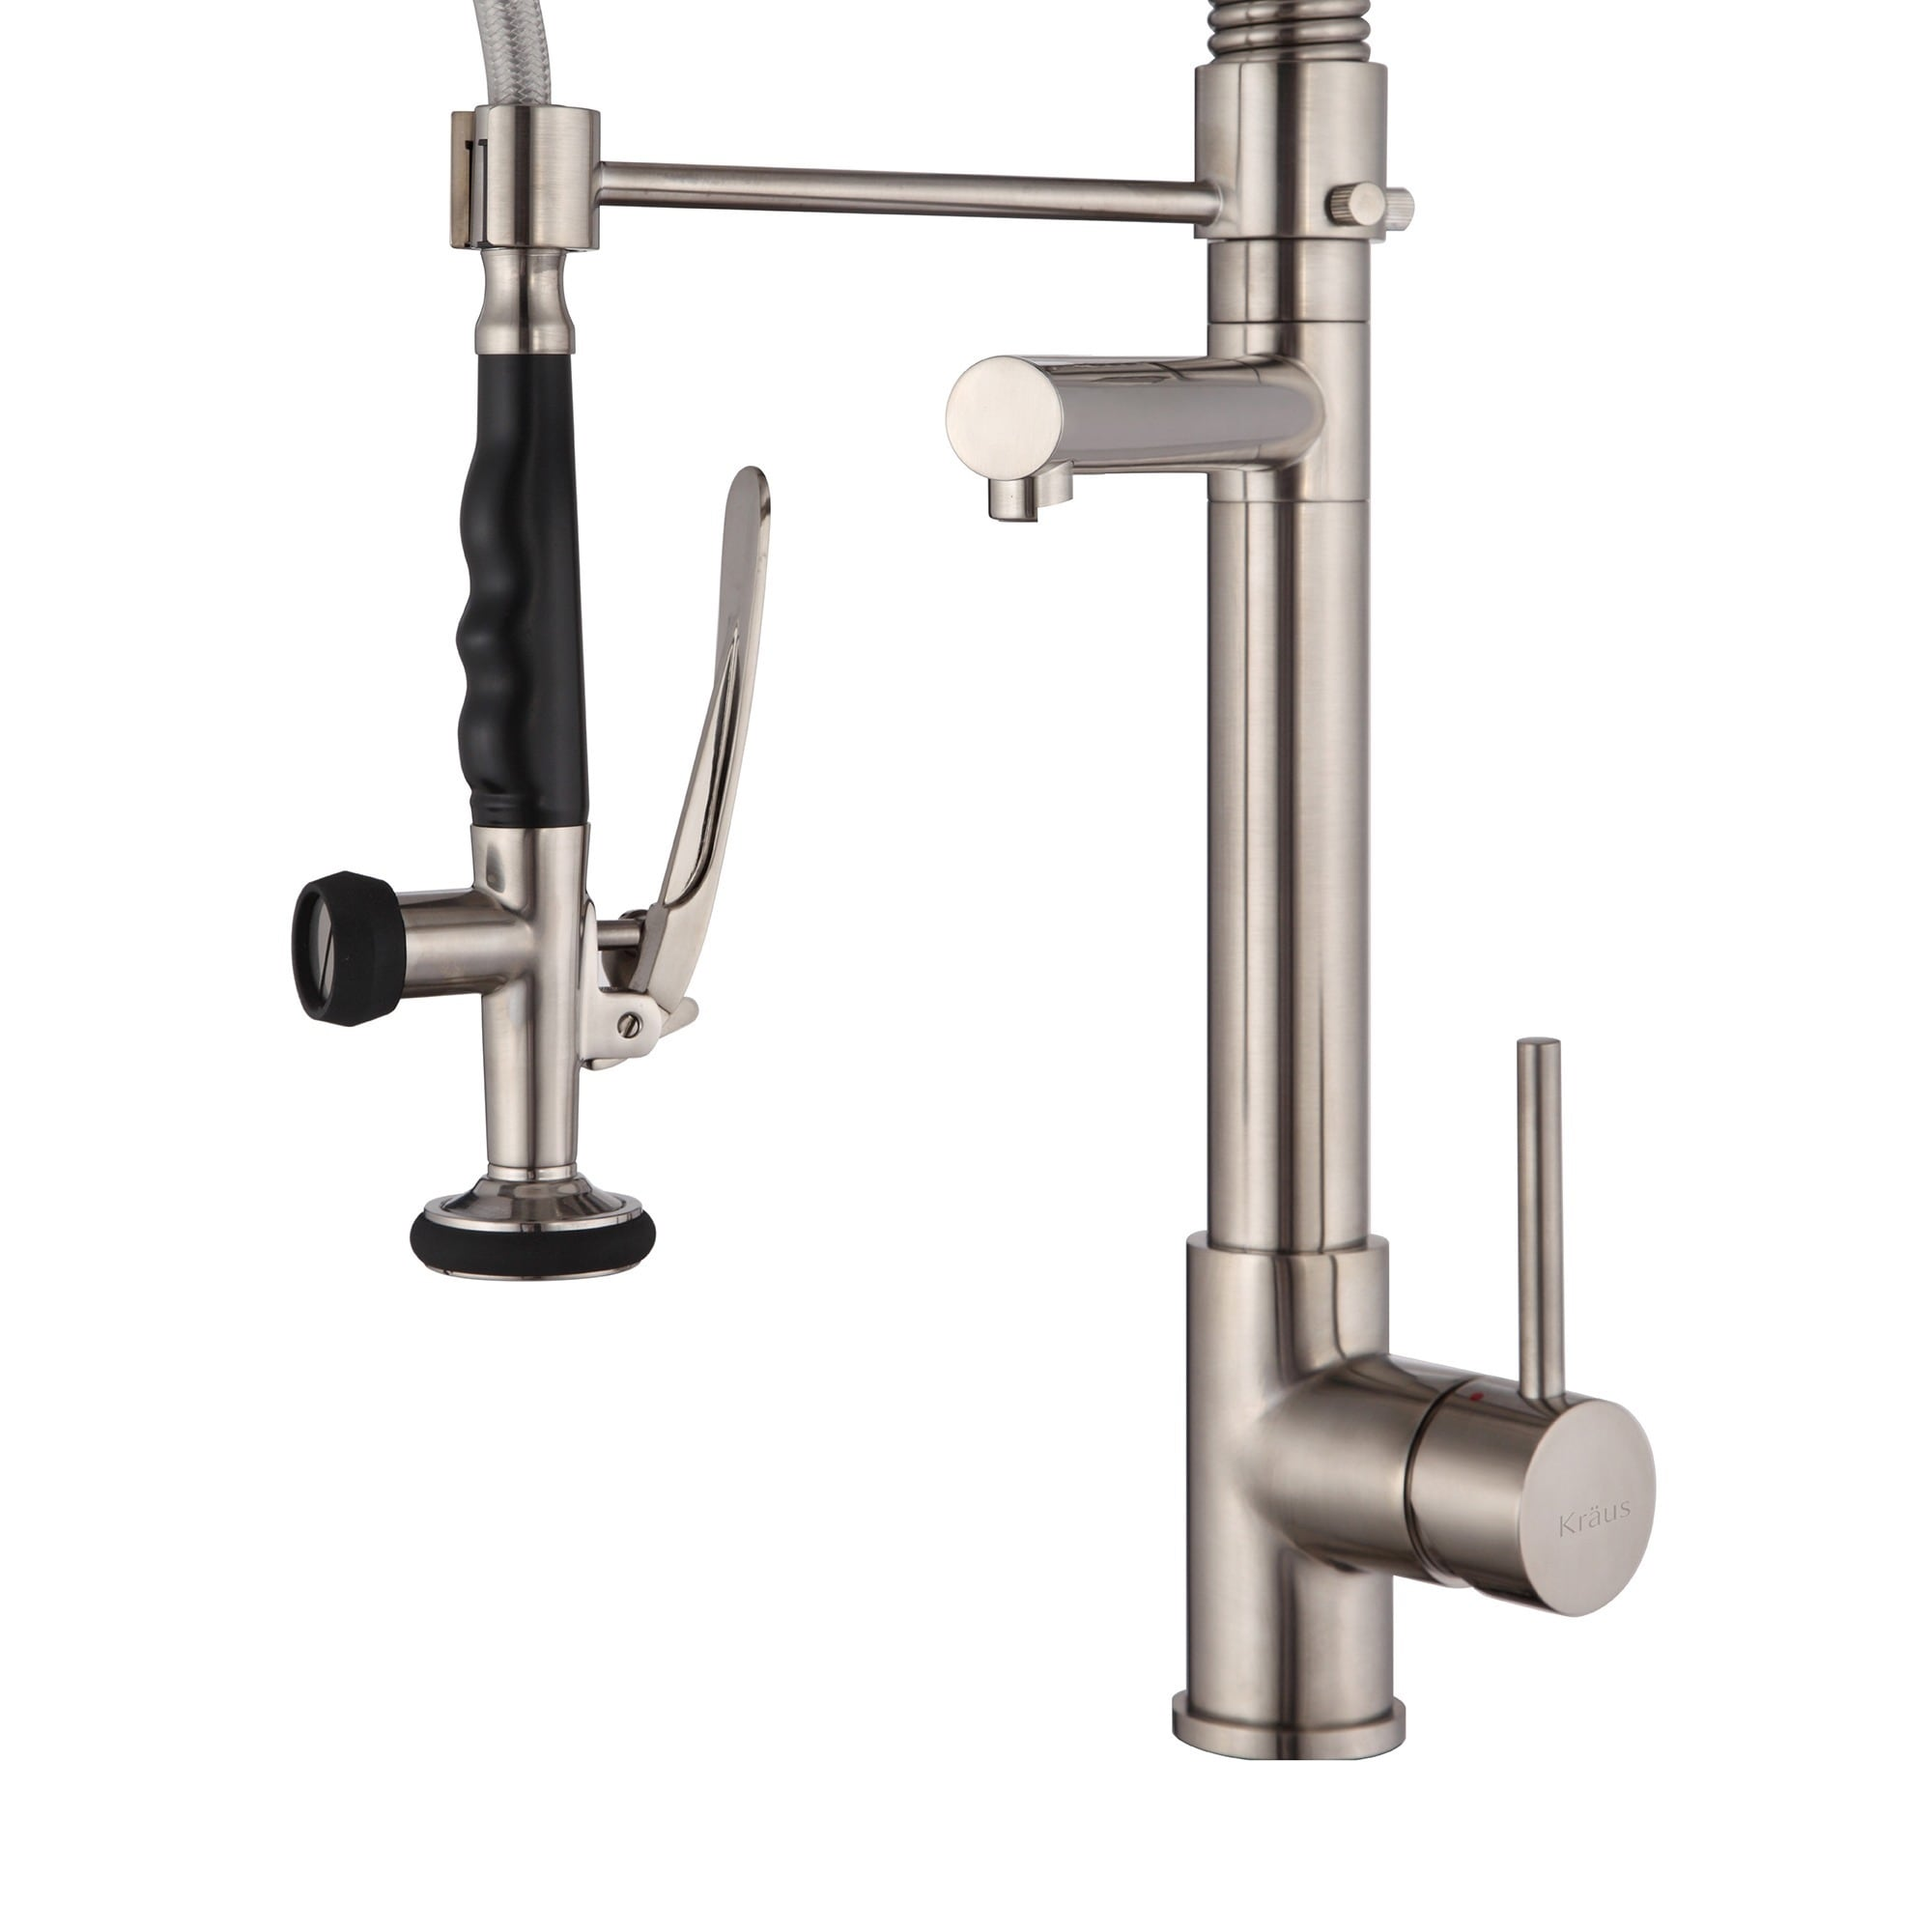 KRAUS Commercial-Style Single-Handle Kitchen Faucet with Pull Down ...